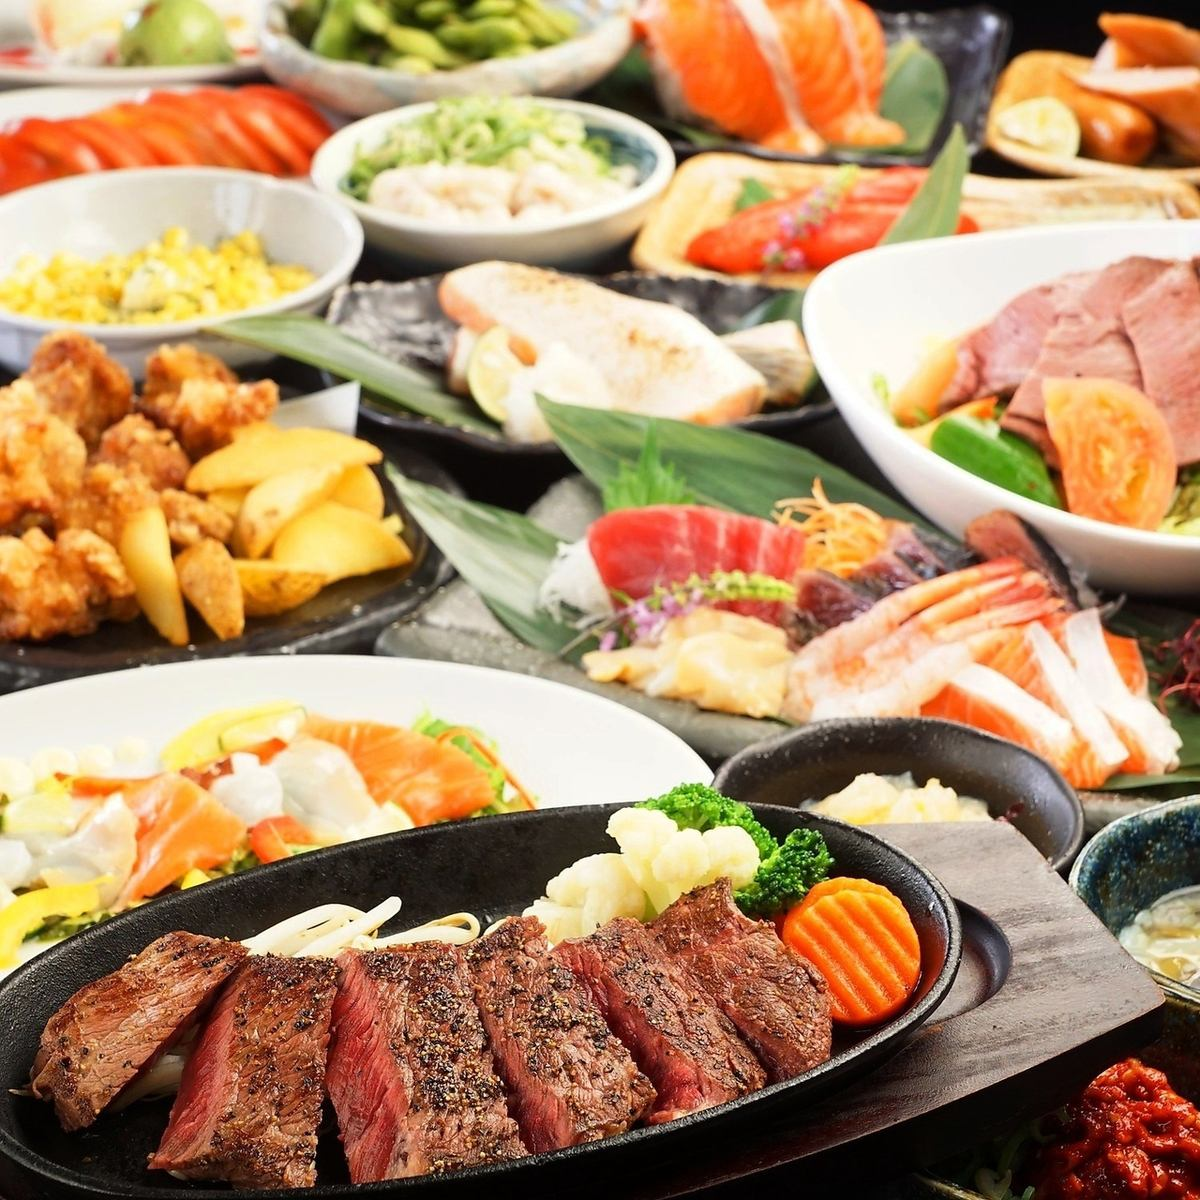 Meat dishes such as beef steak and young chicken steak are enriched ♪